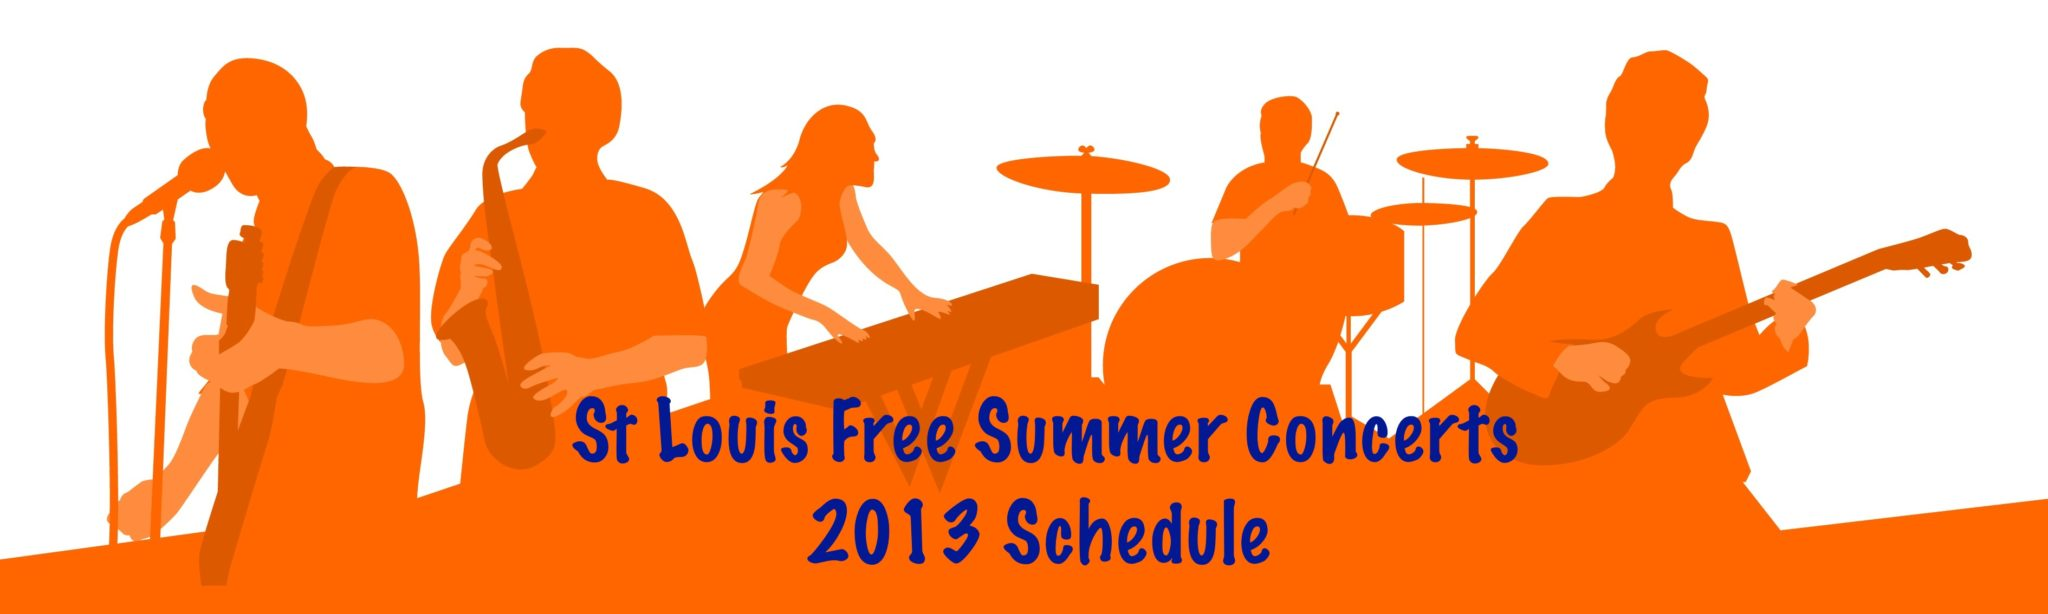 Pbs Concerts Schedule For Summer 2013